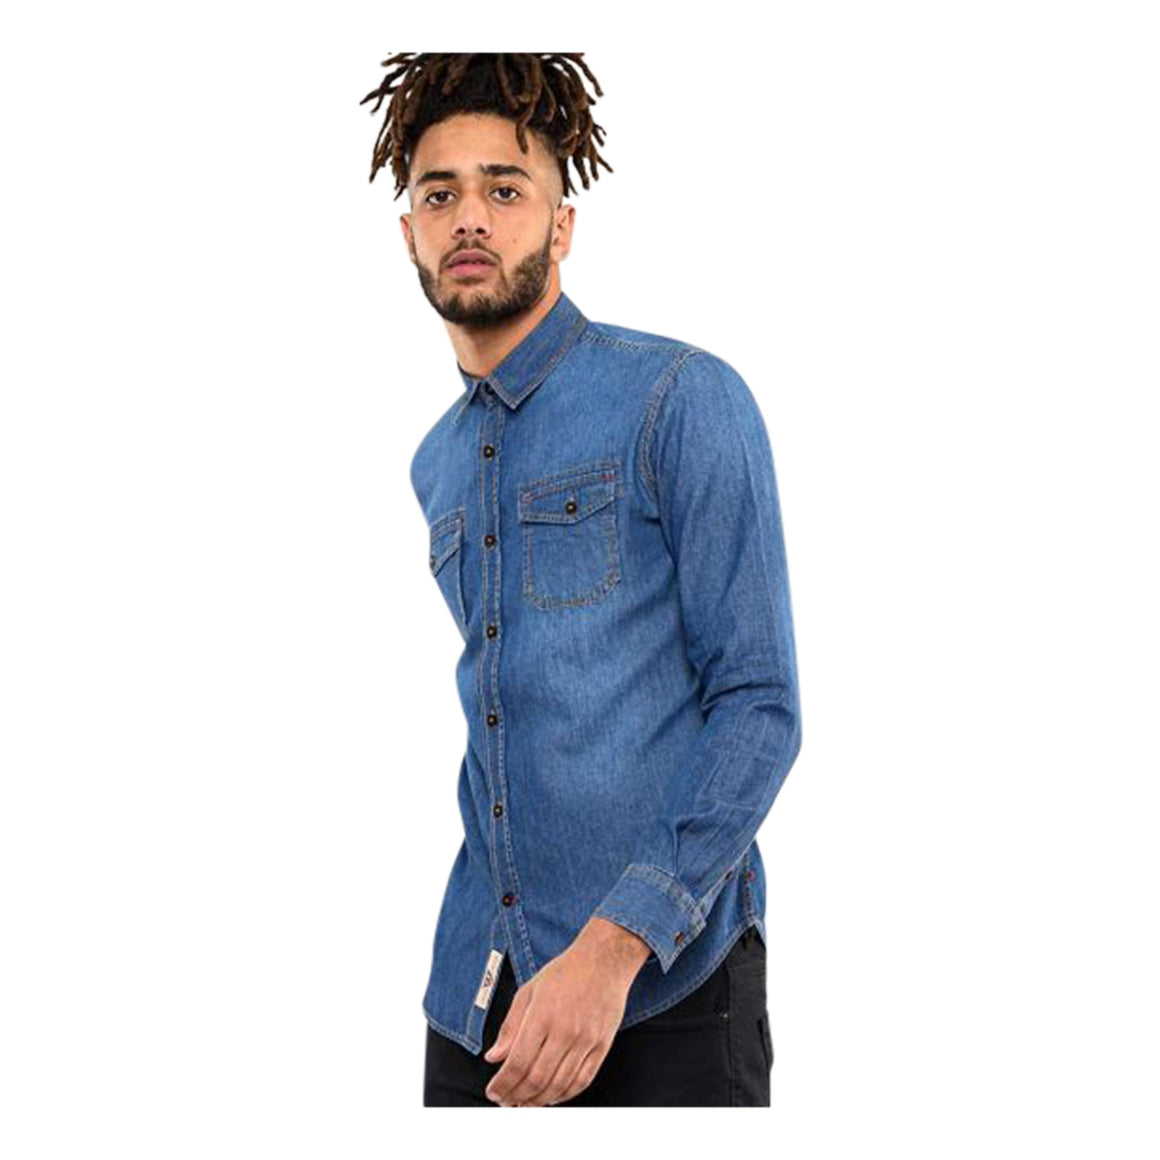 Scotsdale Long Sleeve Denim Shirt for Men in Dark Blue Denim